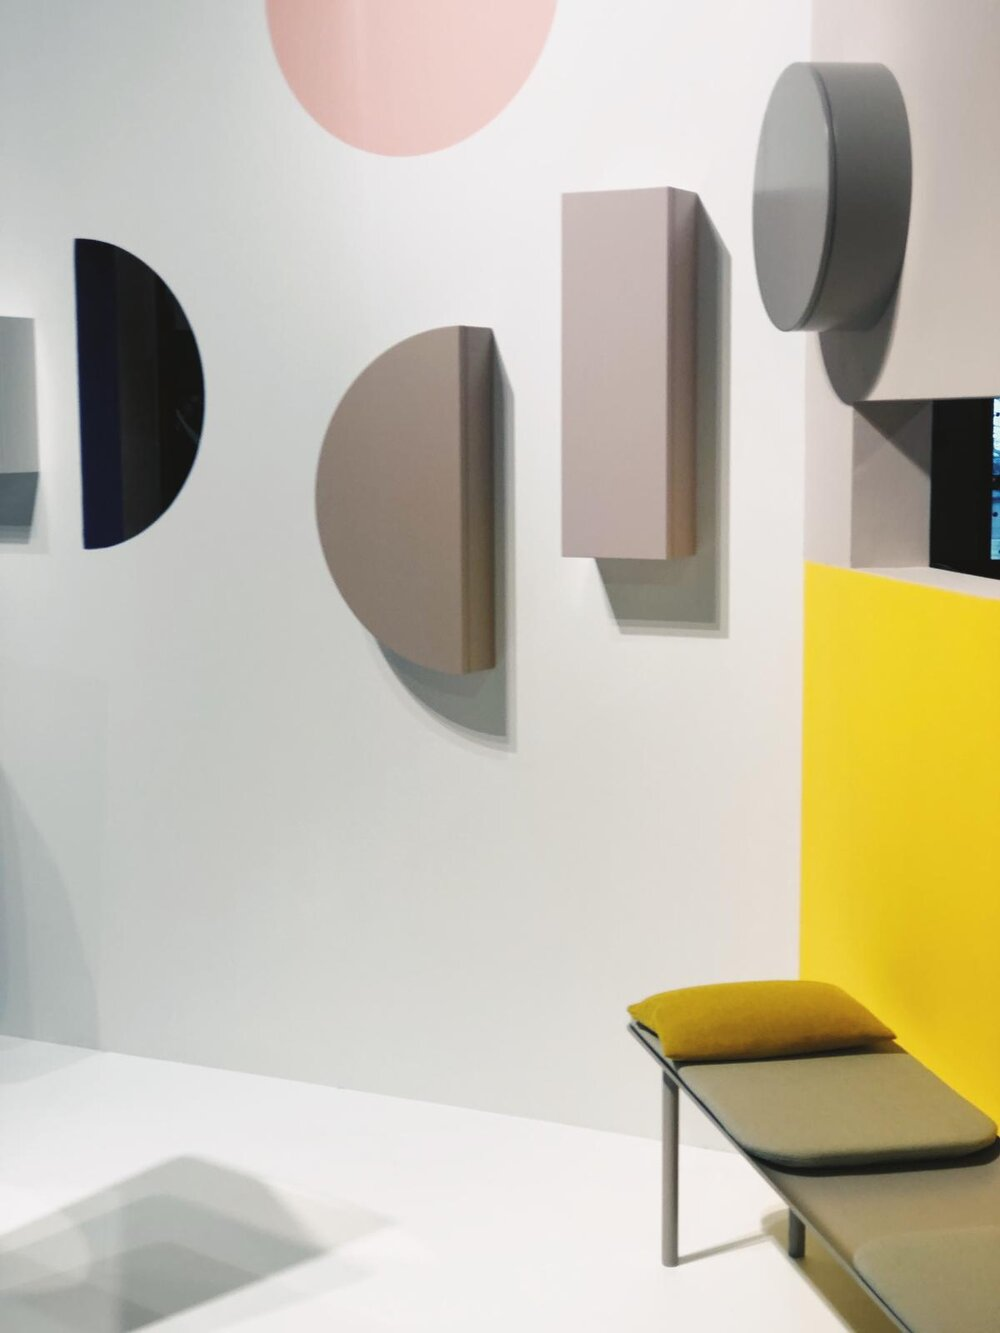 My favorite: New  SIMETRIA wall cabinets  from  Schoenbuch  by  Studio Besau Marguerre